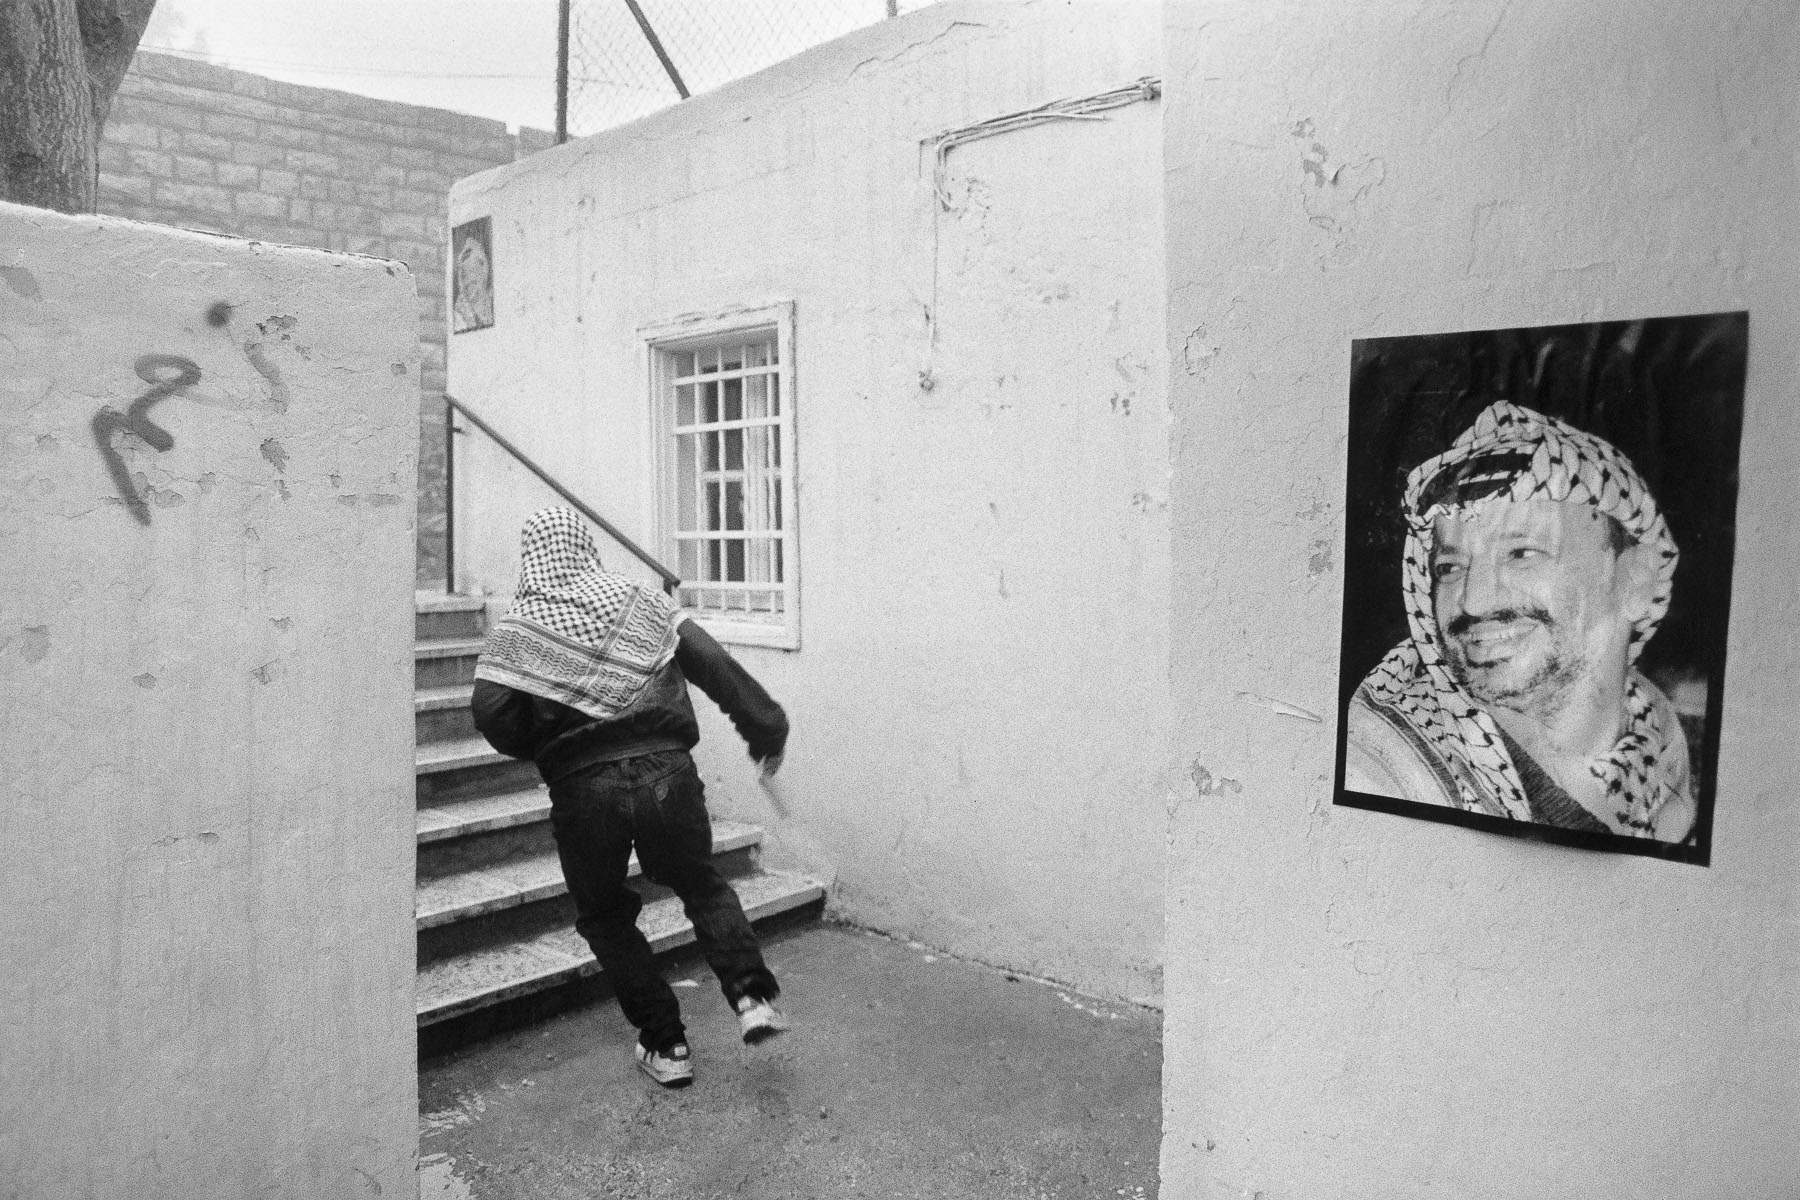 A student and Yasser Arafat's portrait at the Birzeit University in January 1988